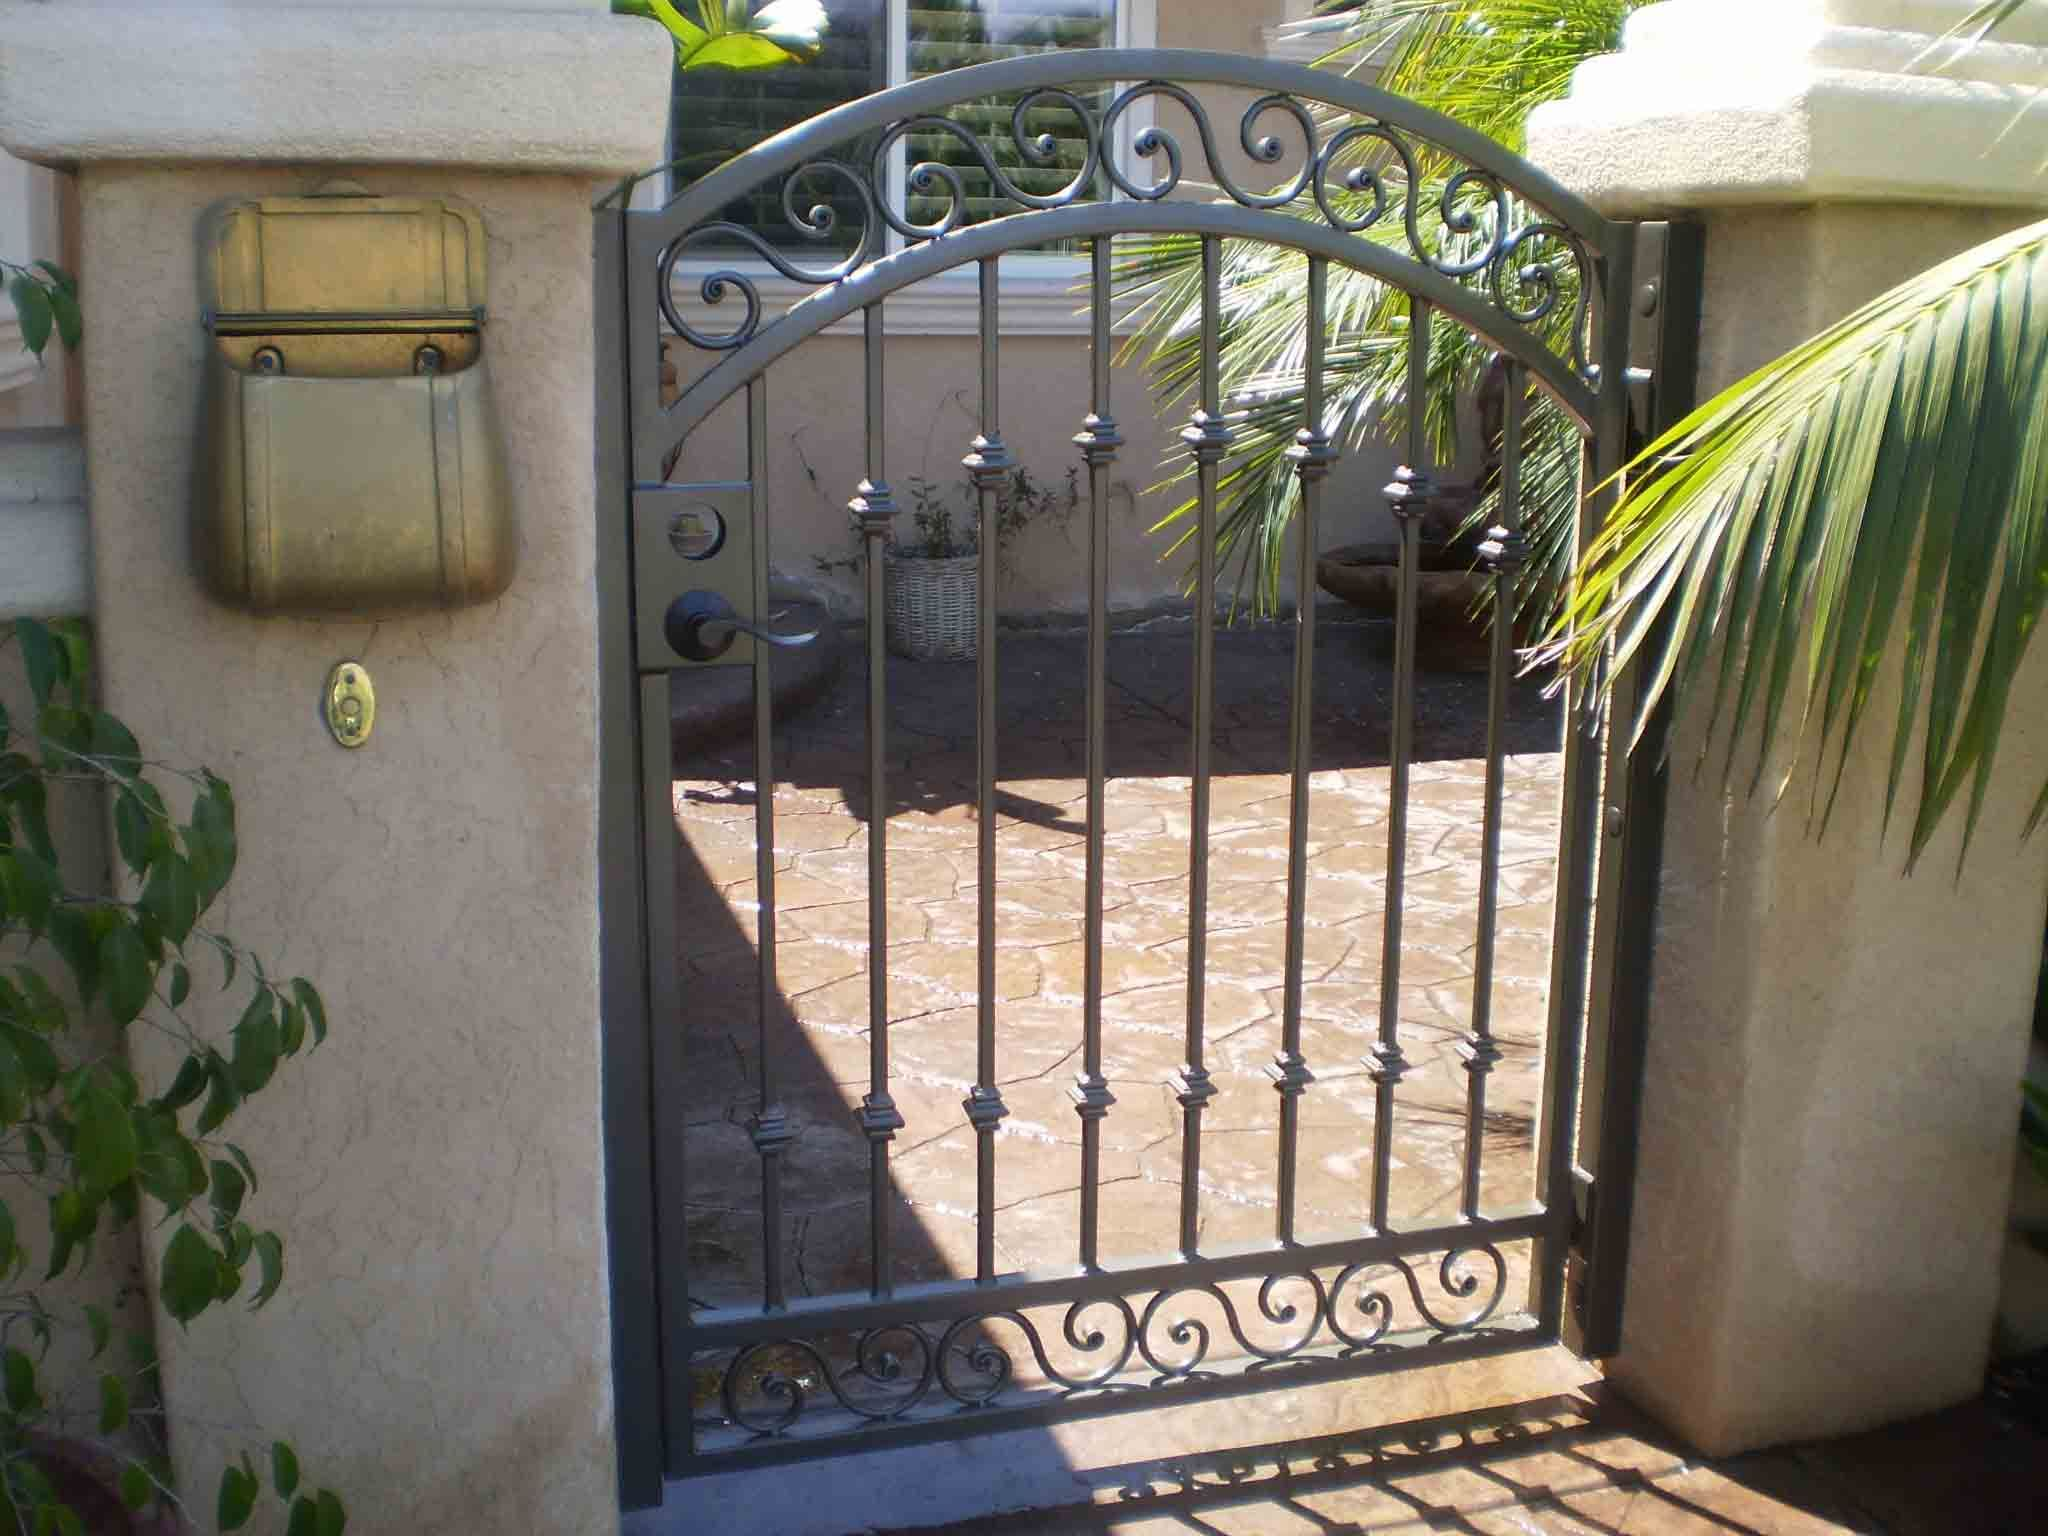 Wrought Iron Security Gate For Entrance To Courtyard Wrought Iron Garden Gates Iron Garden Gates Wrought Iron Gates